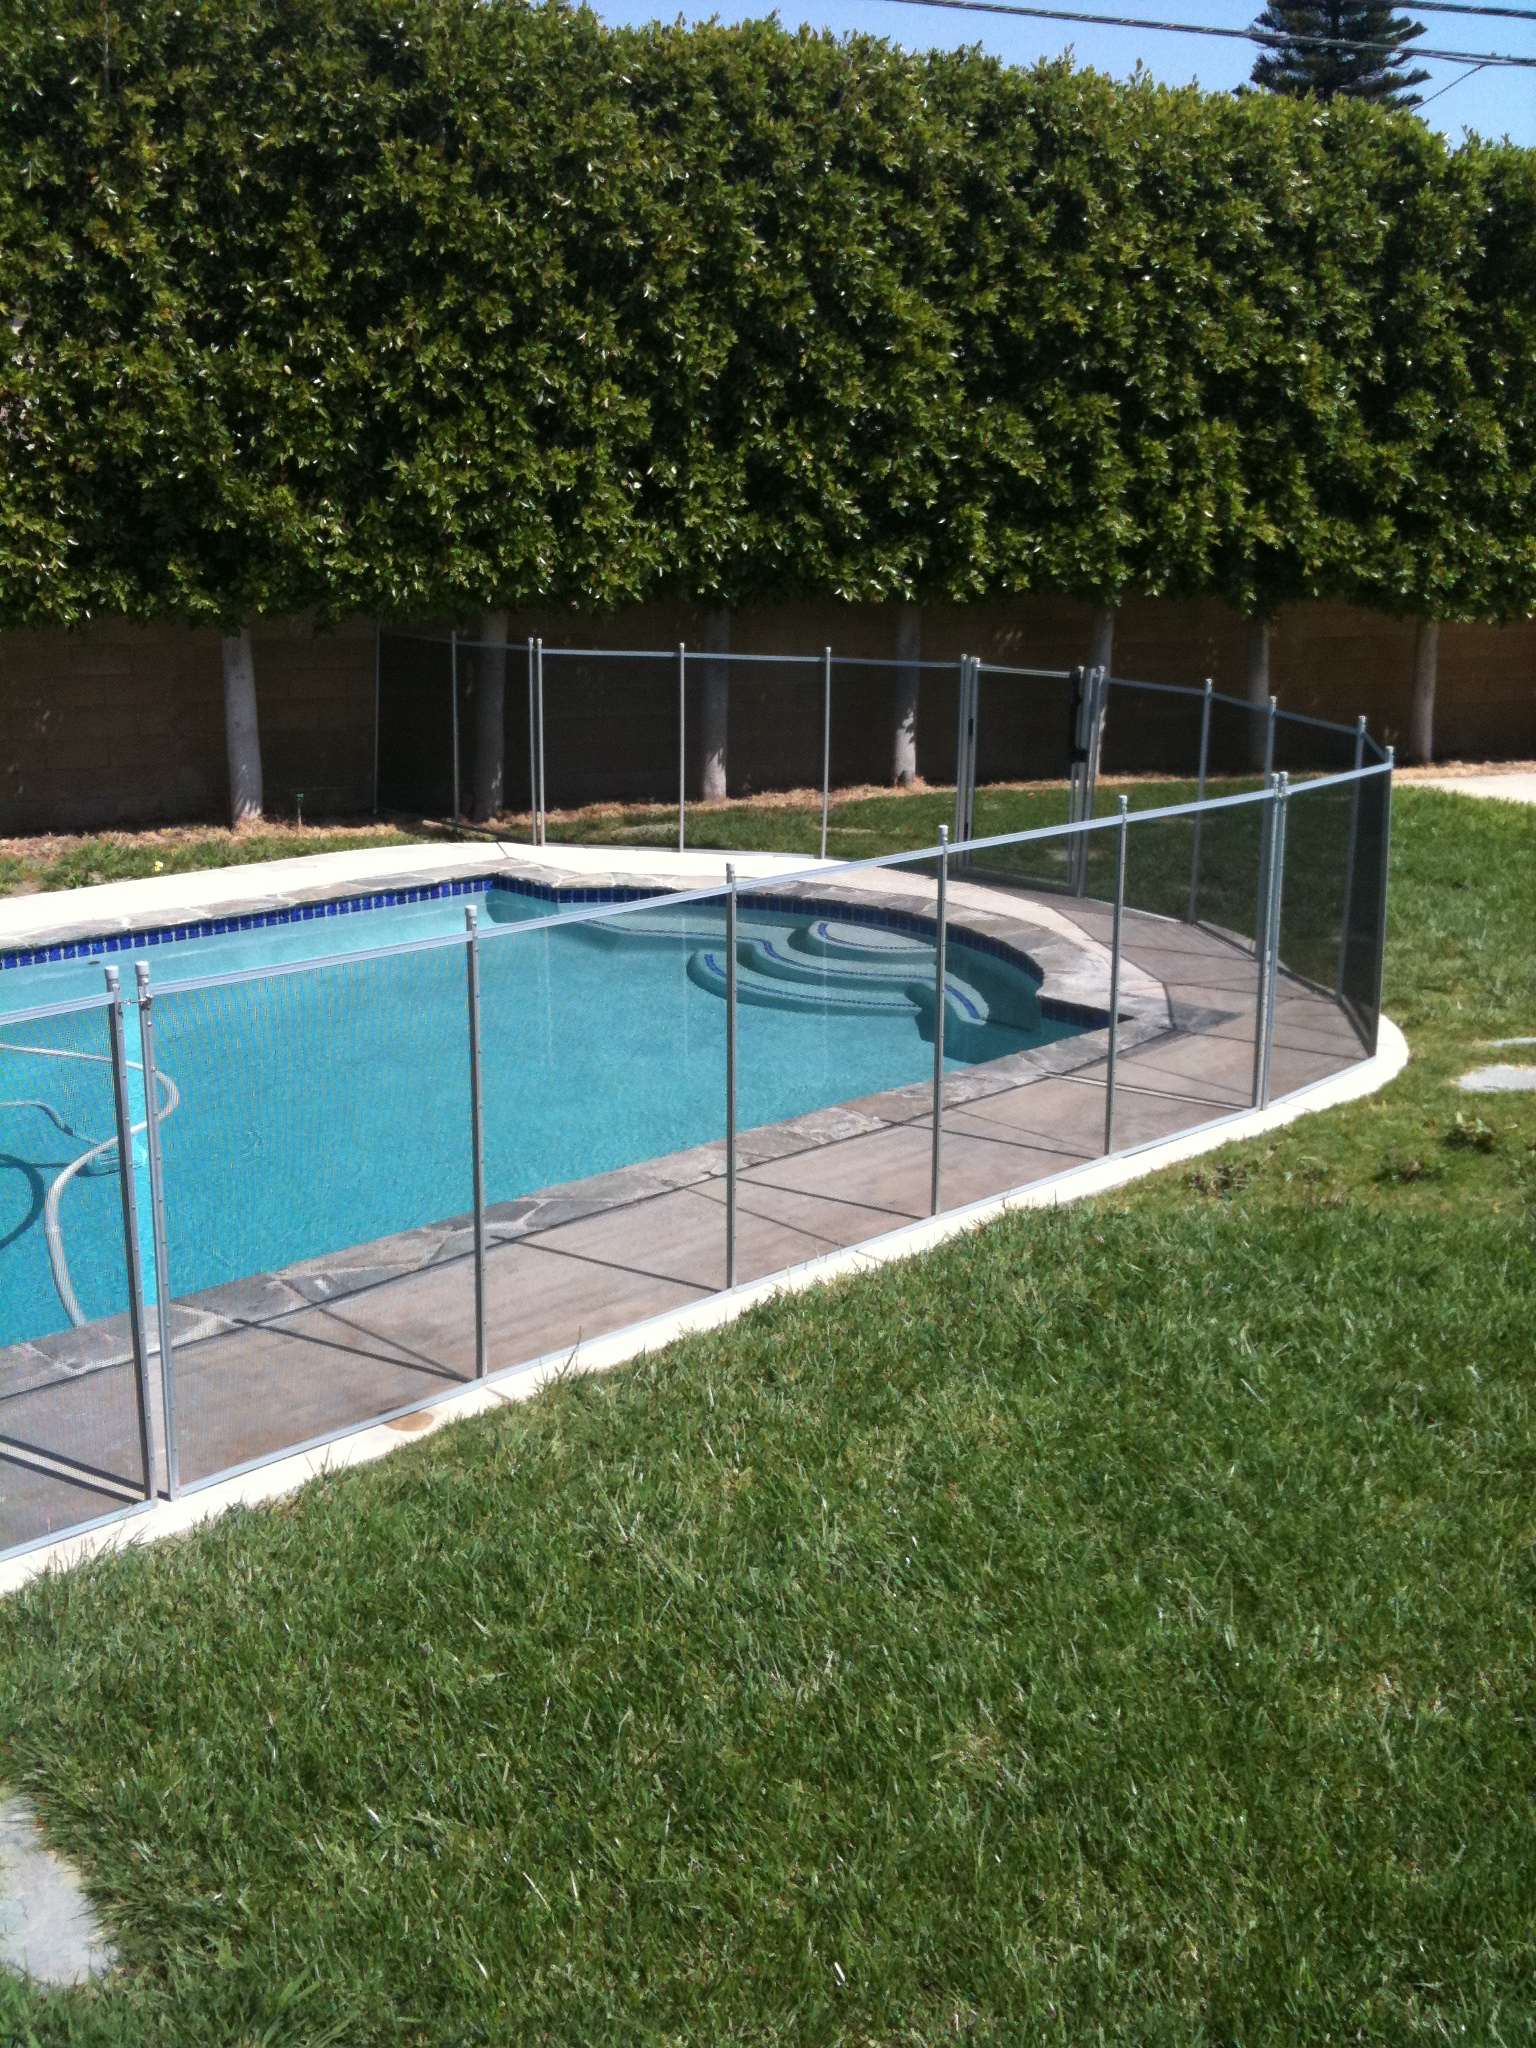 Why choose orange county pool guards removable mesh